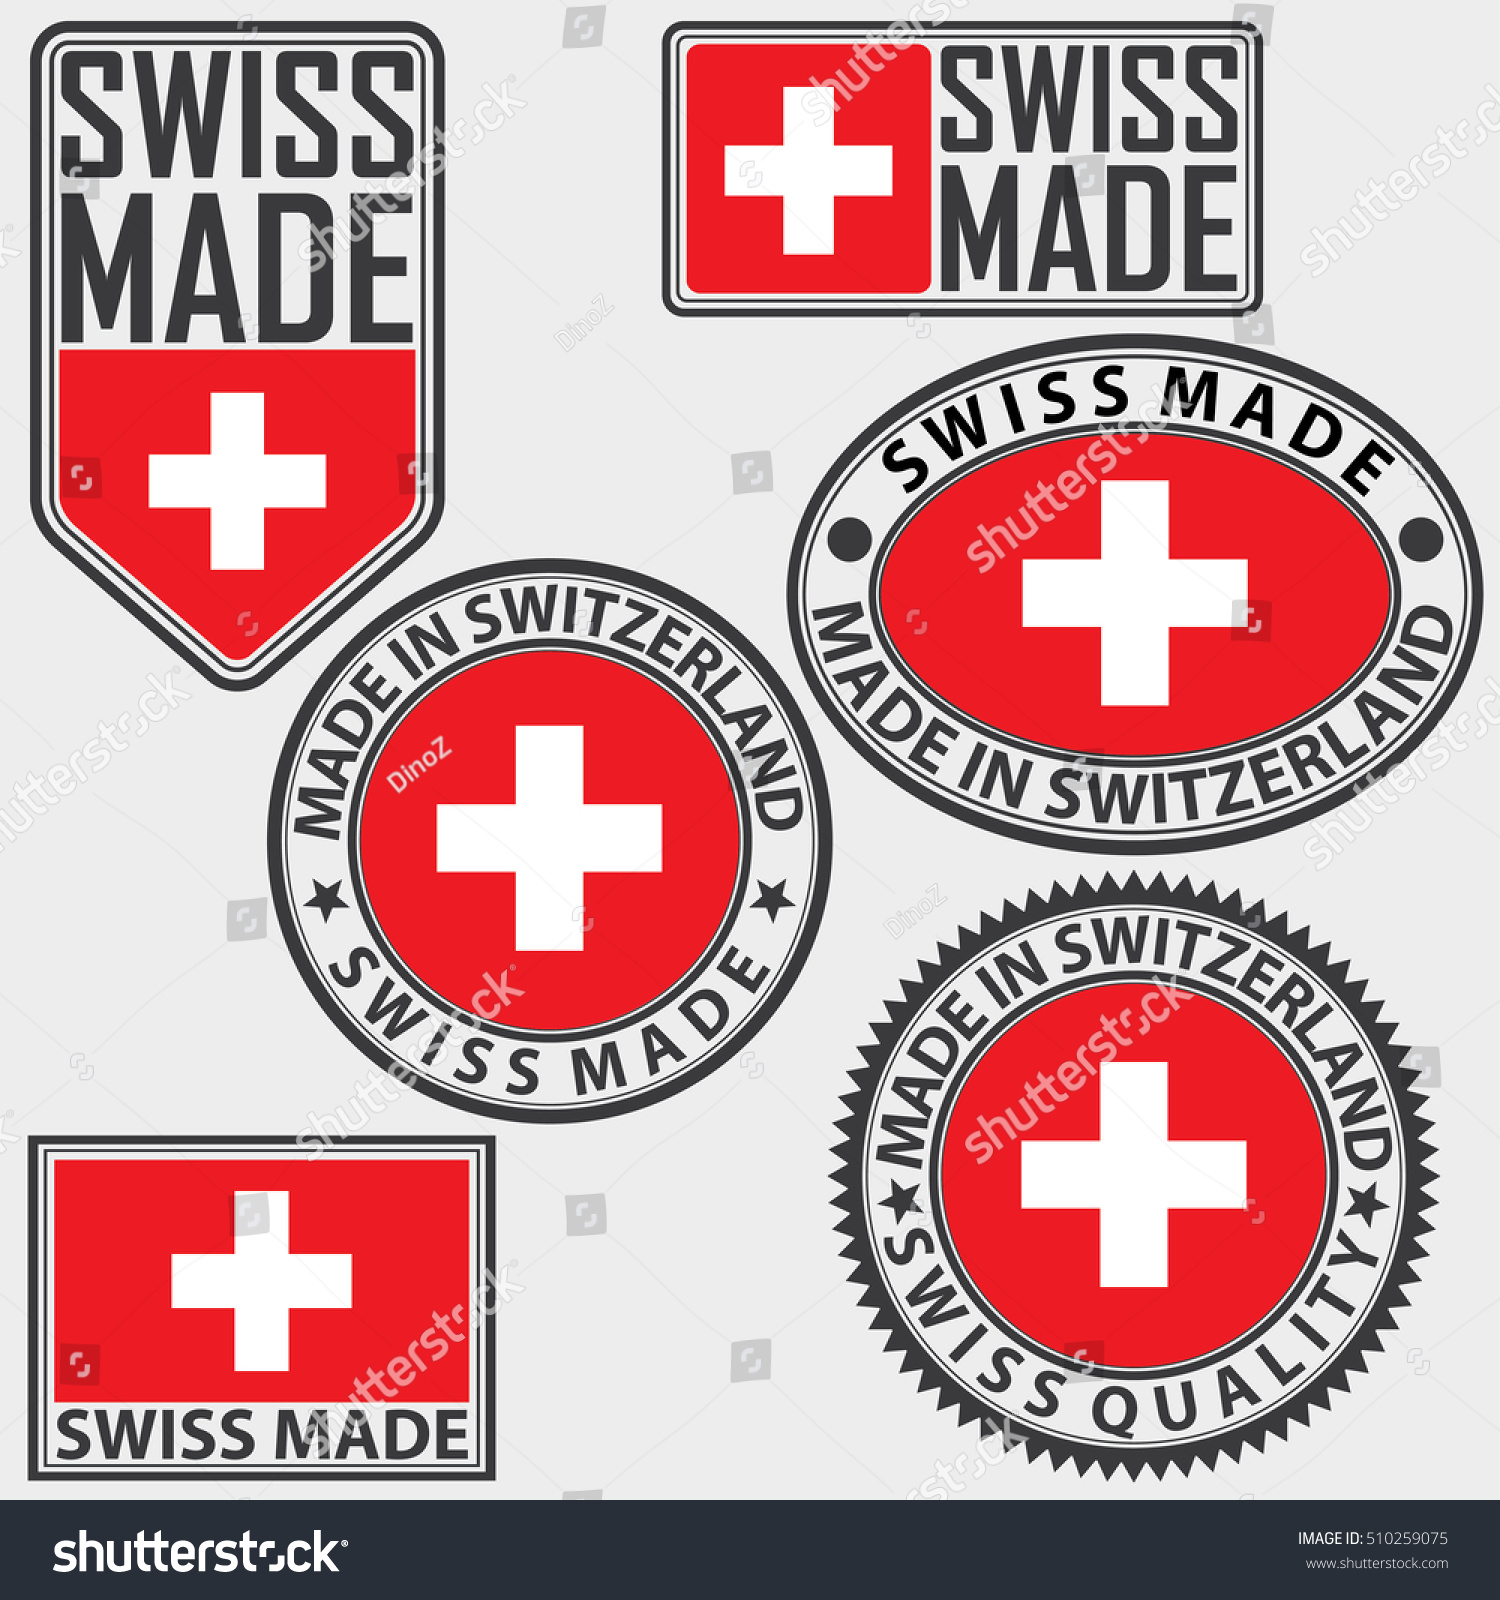 Swiss single stock options